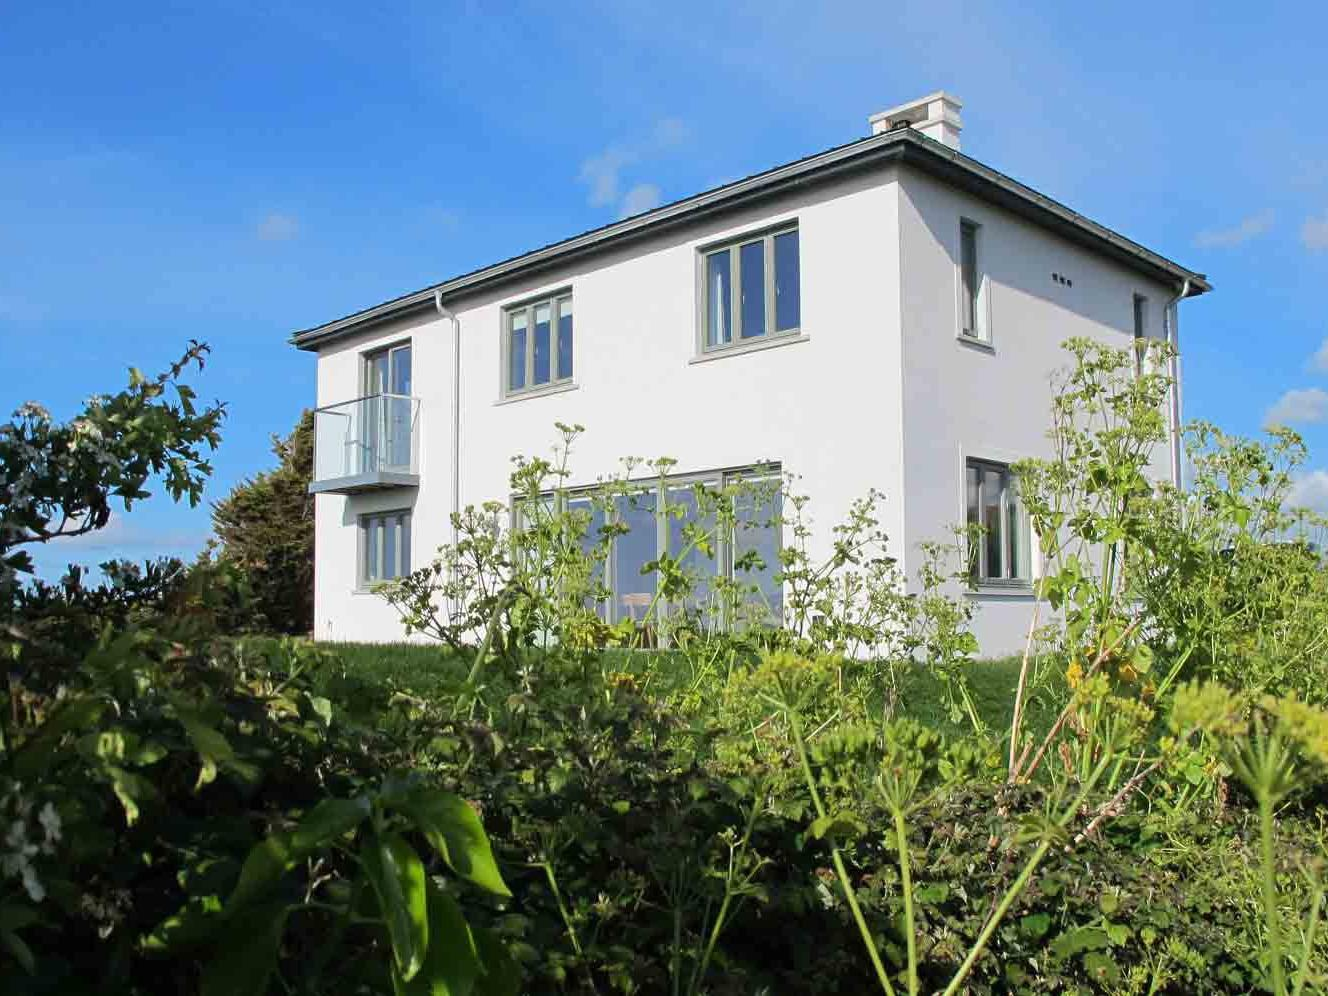 Holiday Cottage Reviews for Kareena - Holiday Cottage in Crantock, Cornwall inc Scilly